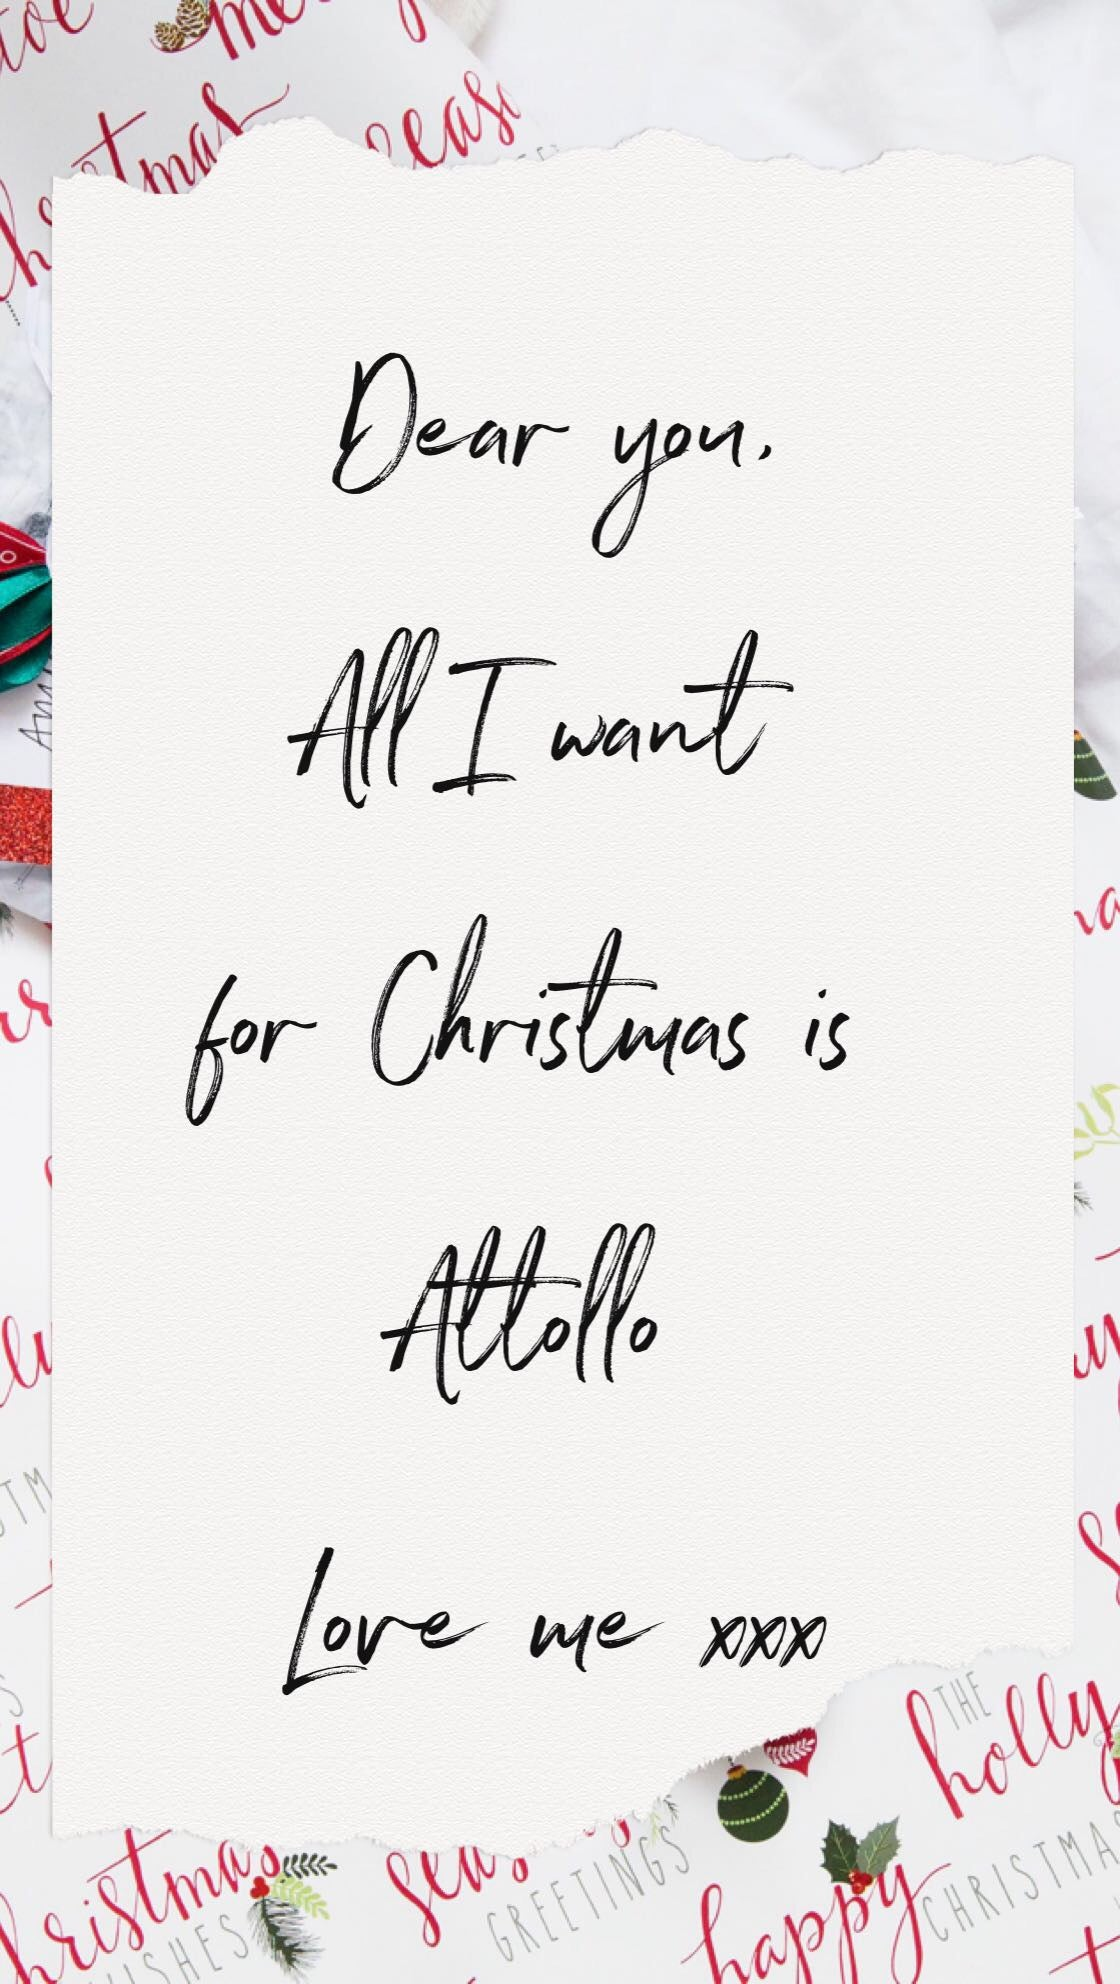 All you need to know from the Attollo Christmas Elves this Christmas